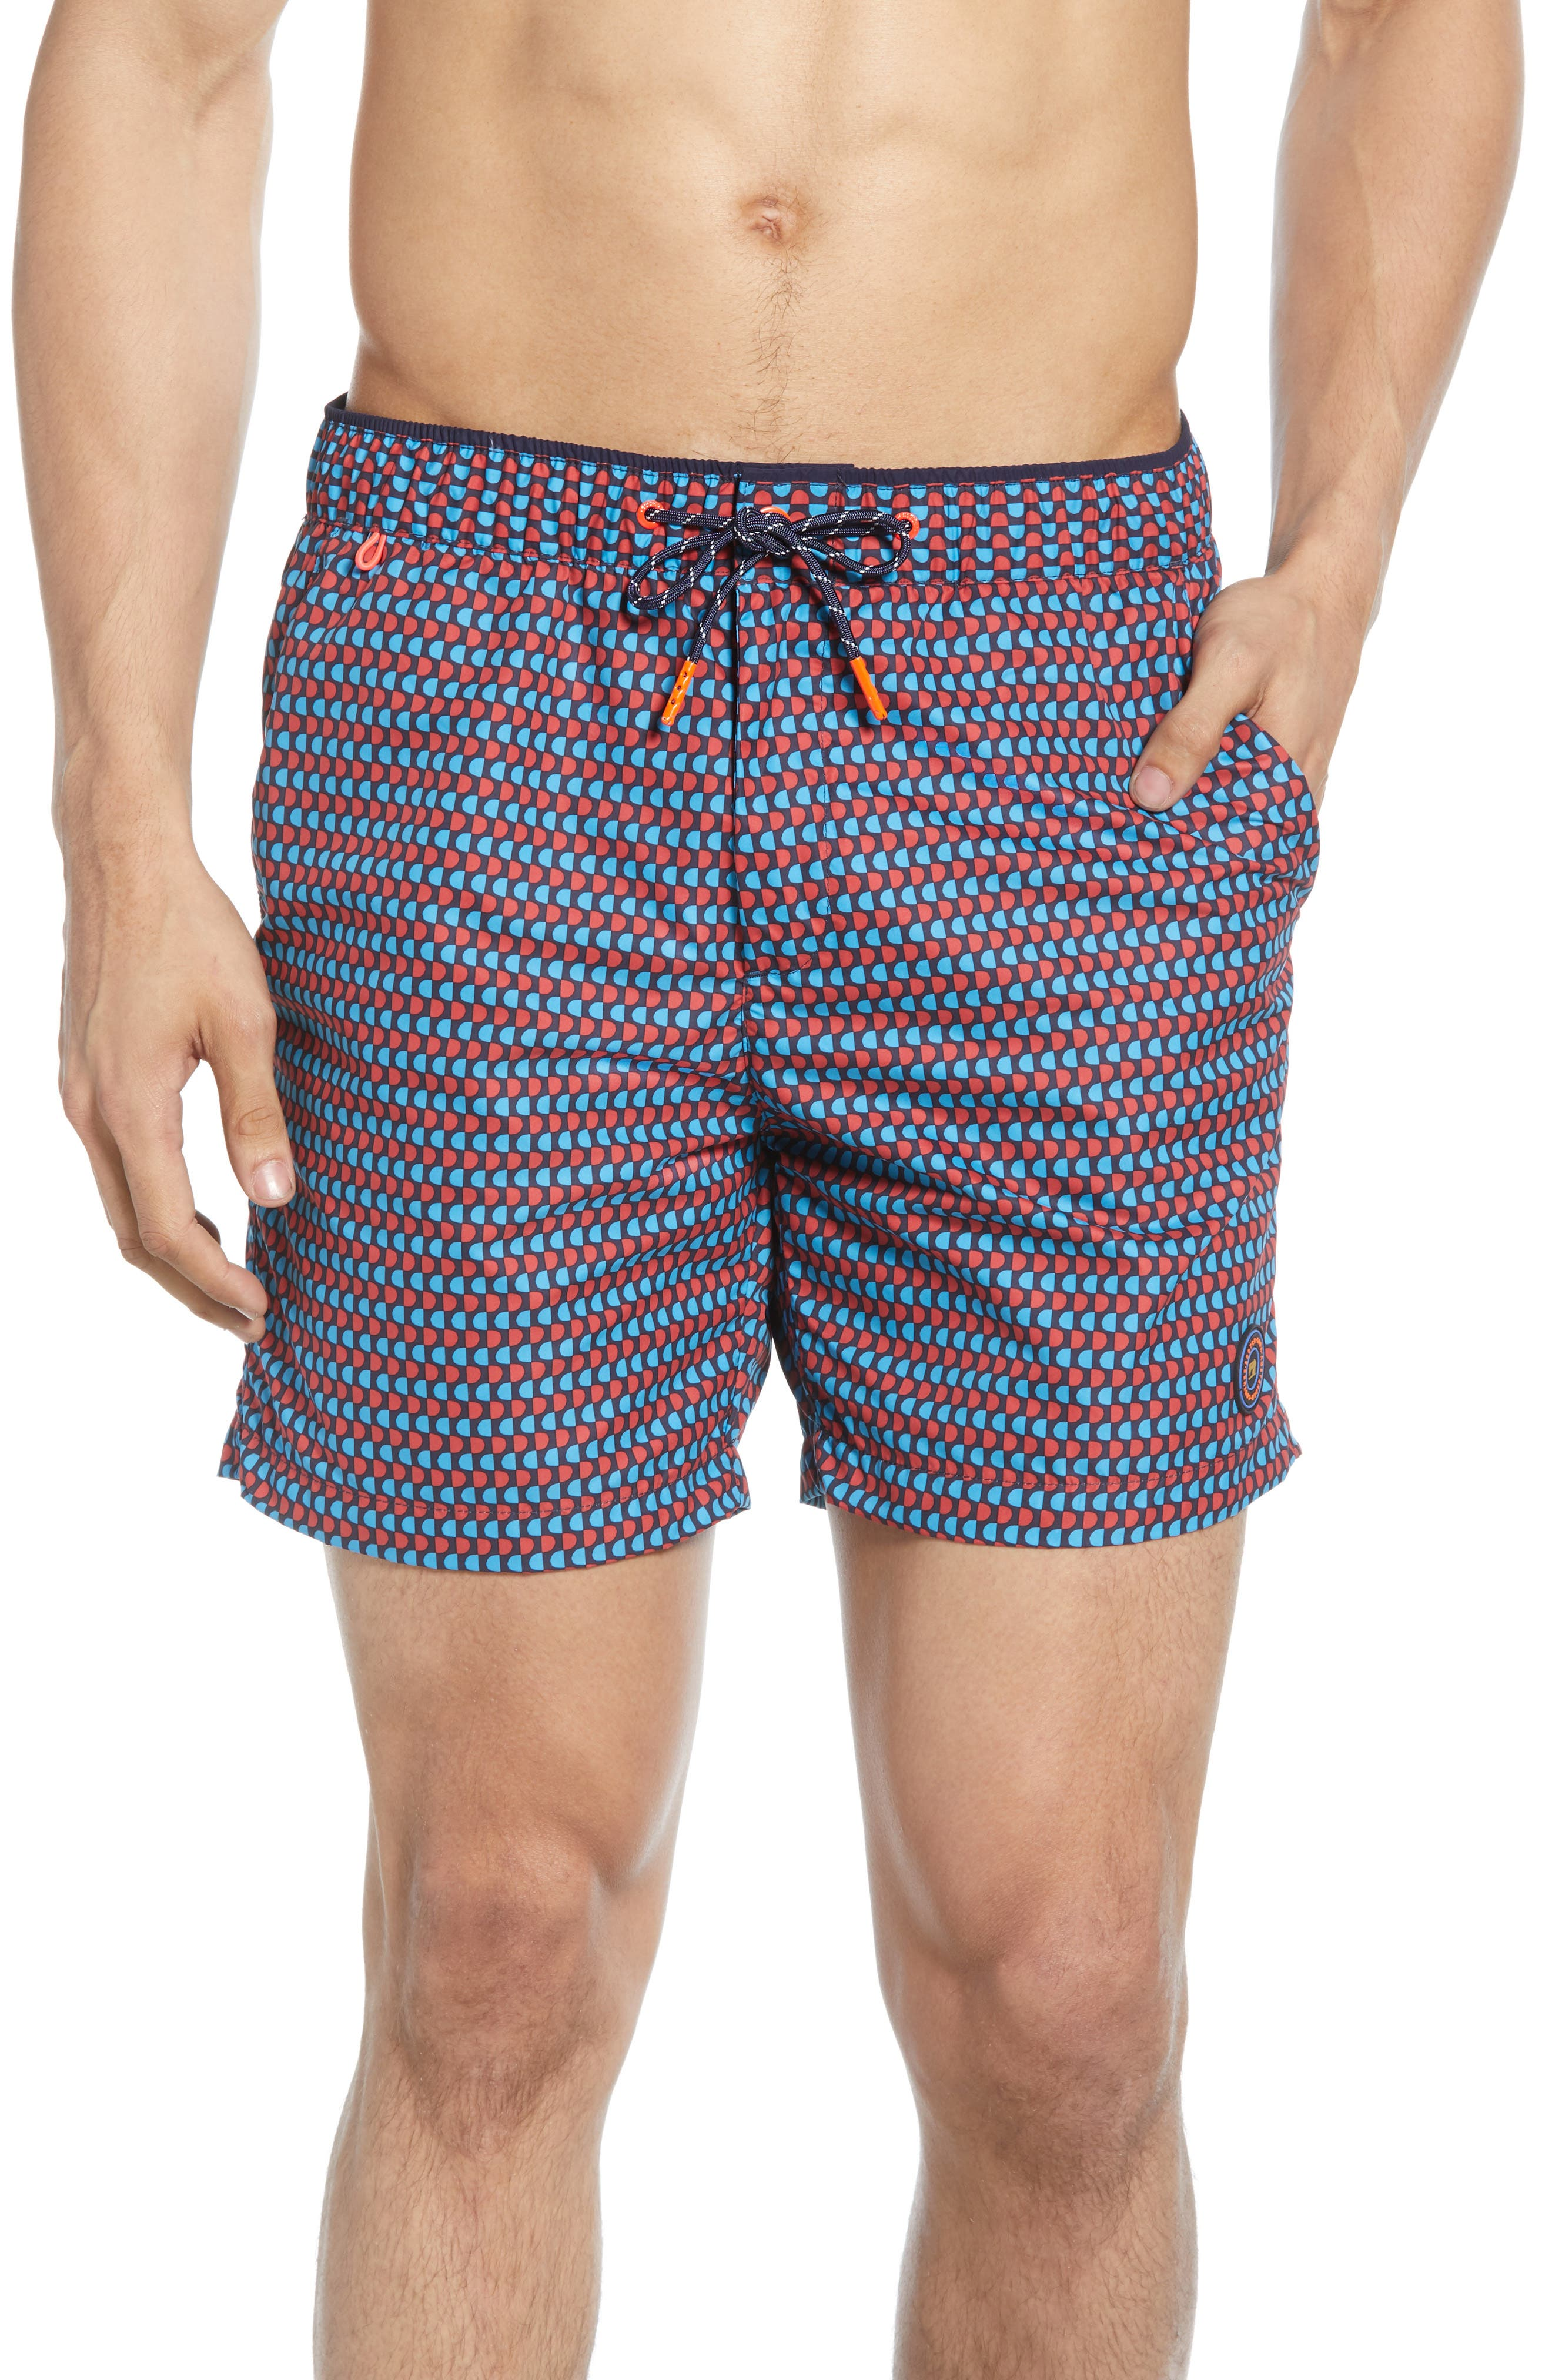 4a37c29e4f Scotch & Soda Classic Colorful Swim Trunks, Blue